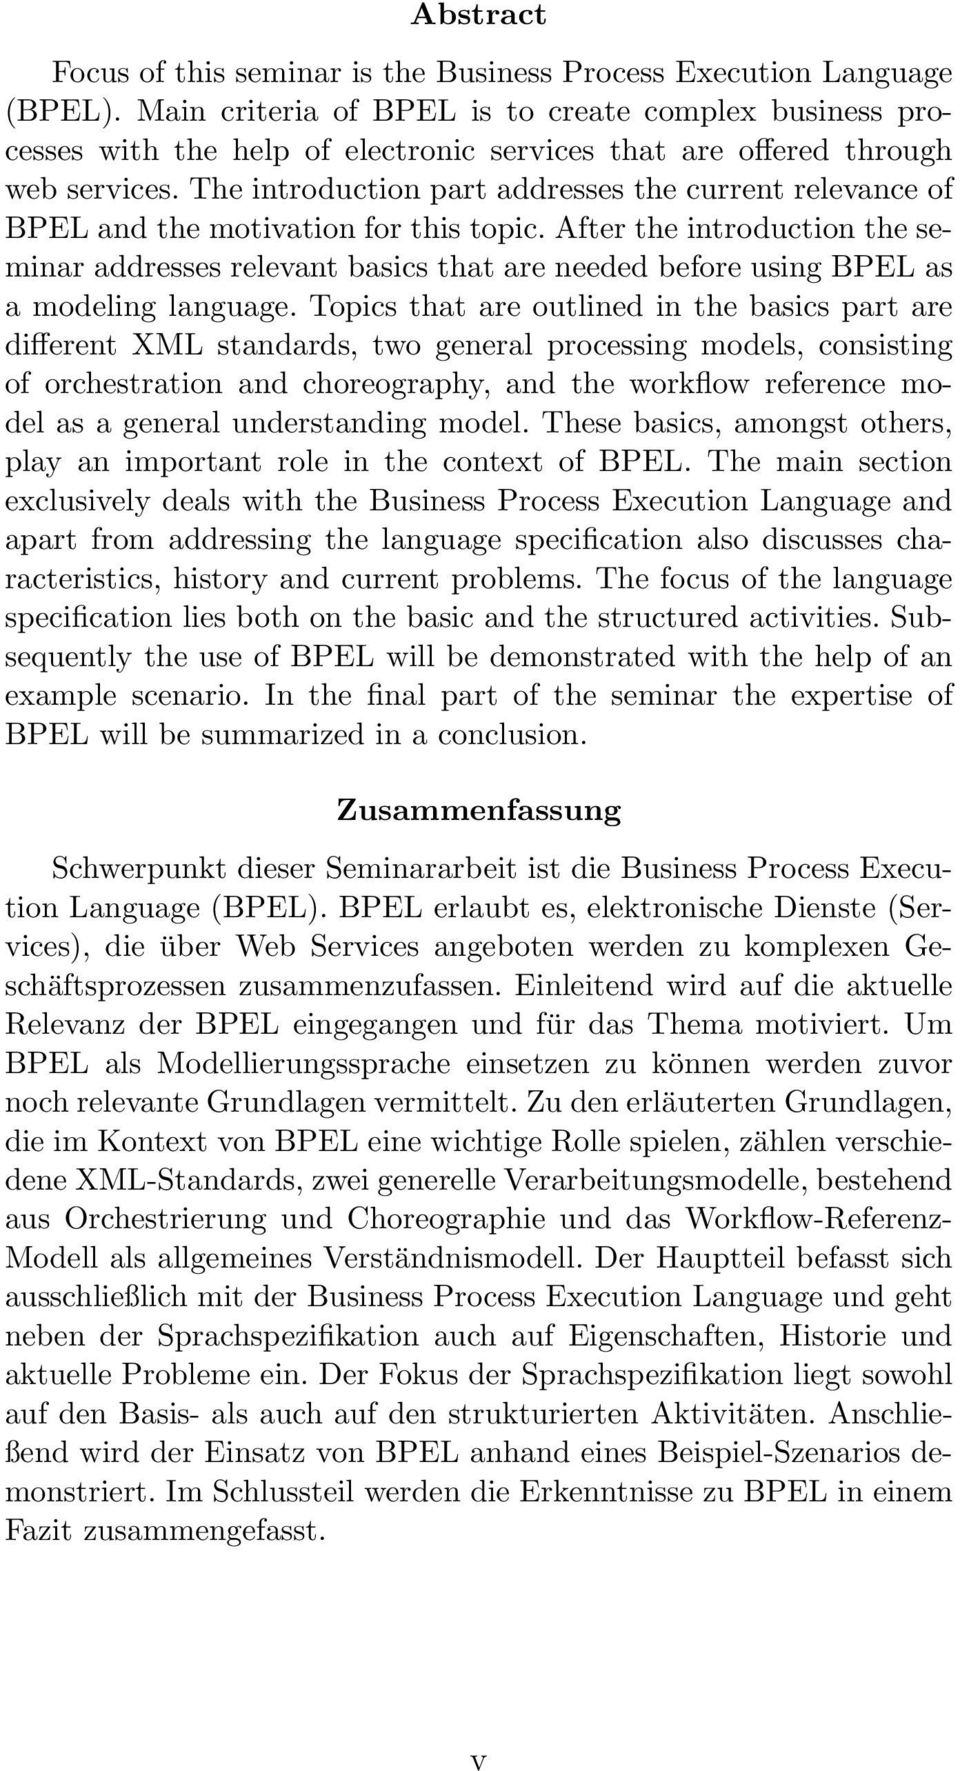 The introduction part addresses the current relevance of BPEL and the motivation for this topic.